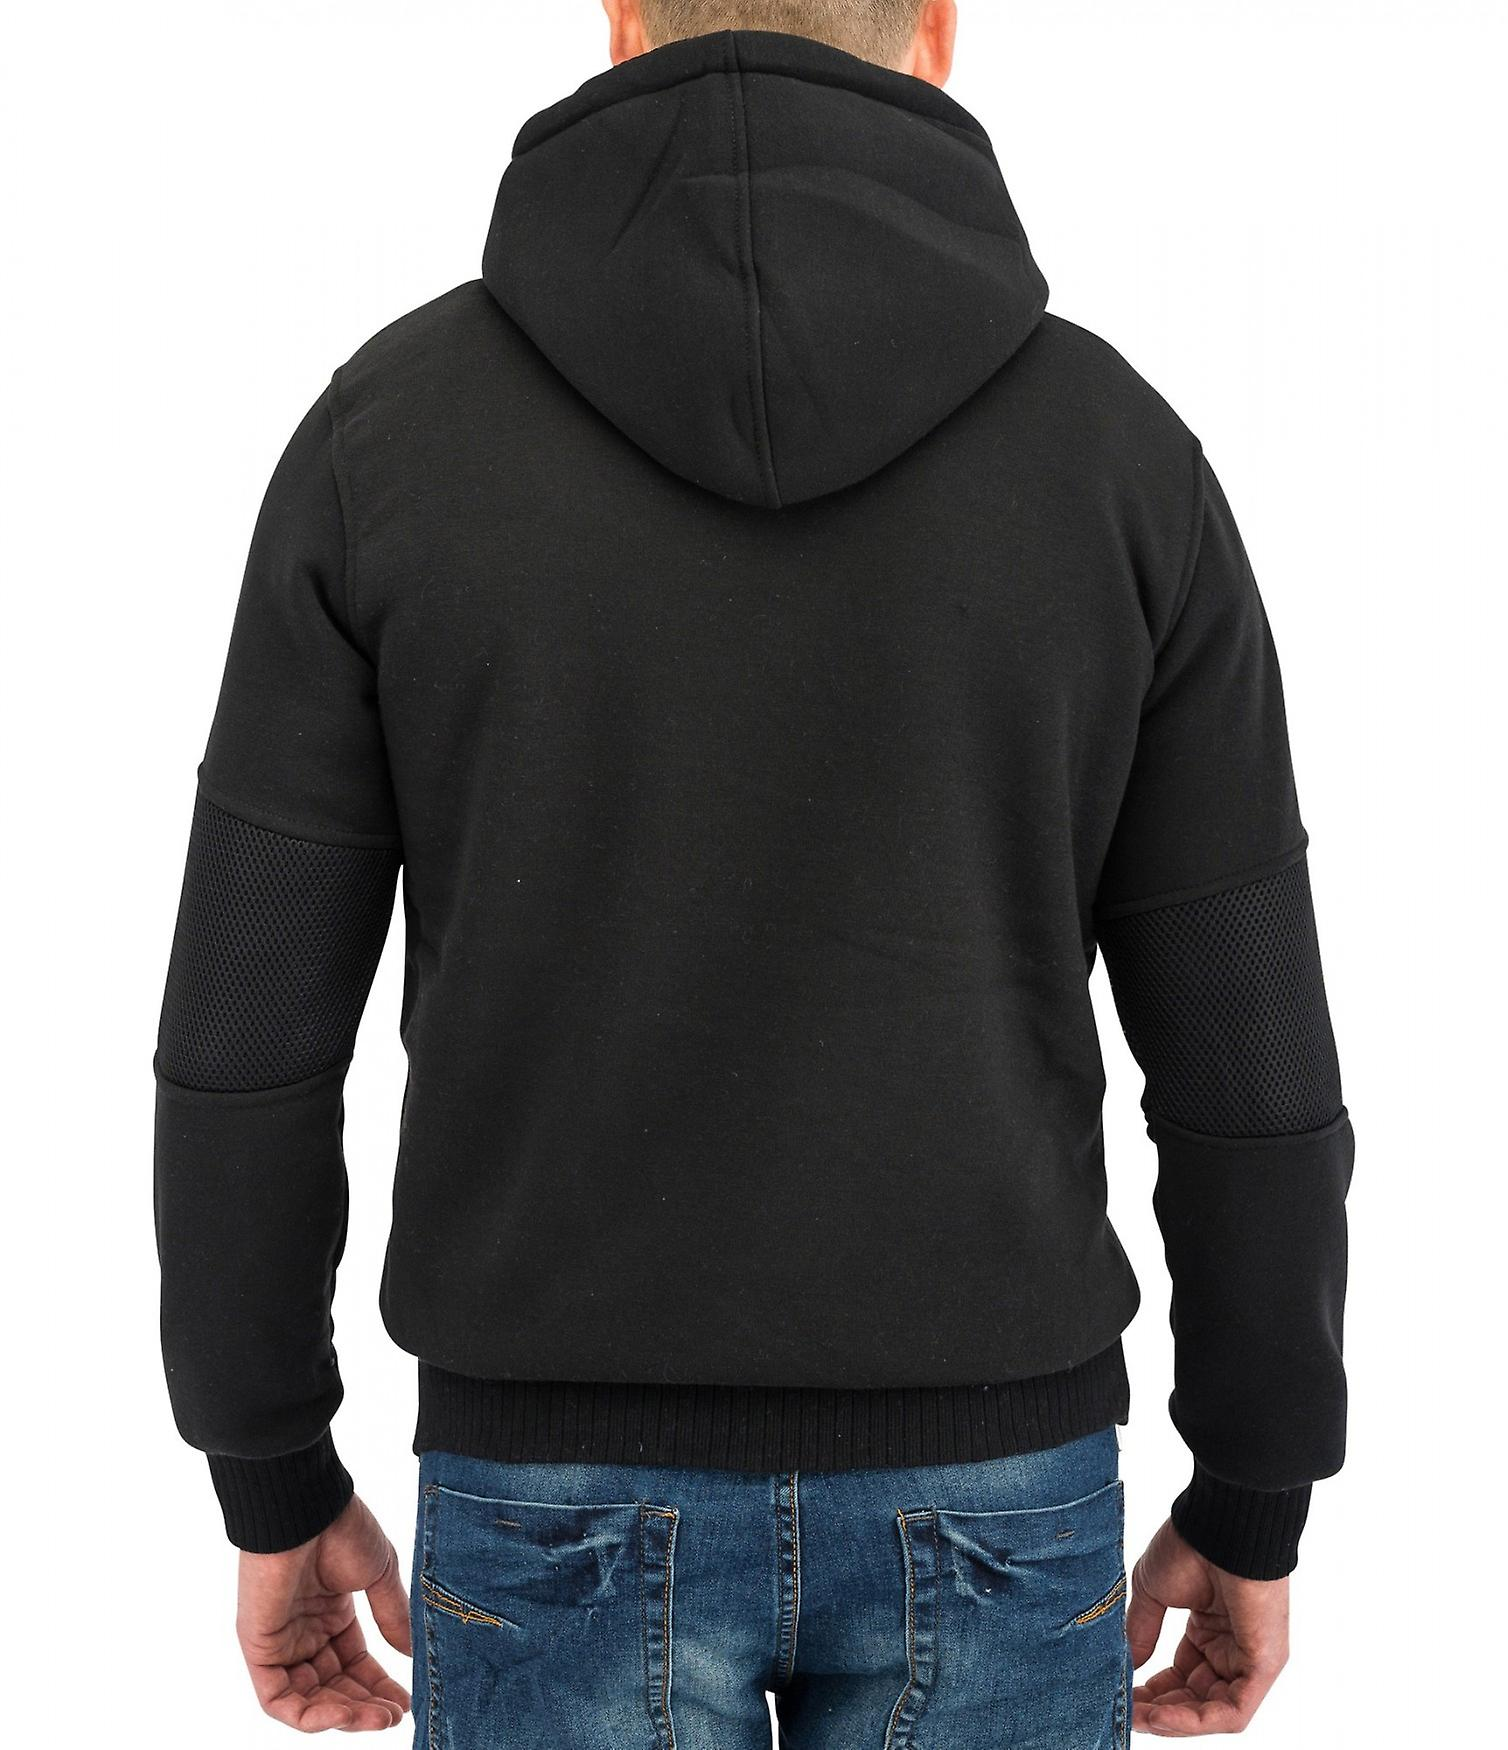 Men's Hooded sweater print trend FASHION Hoodie sweater print sweater points